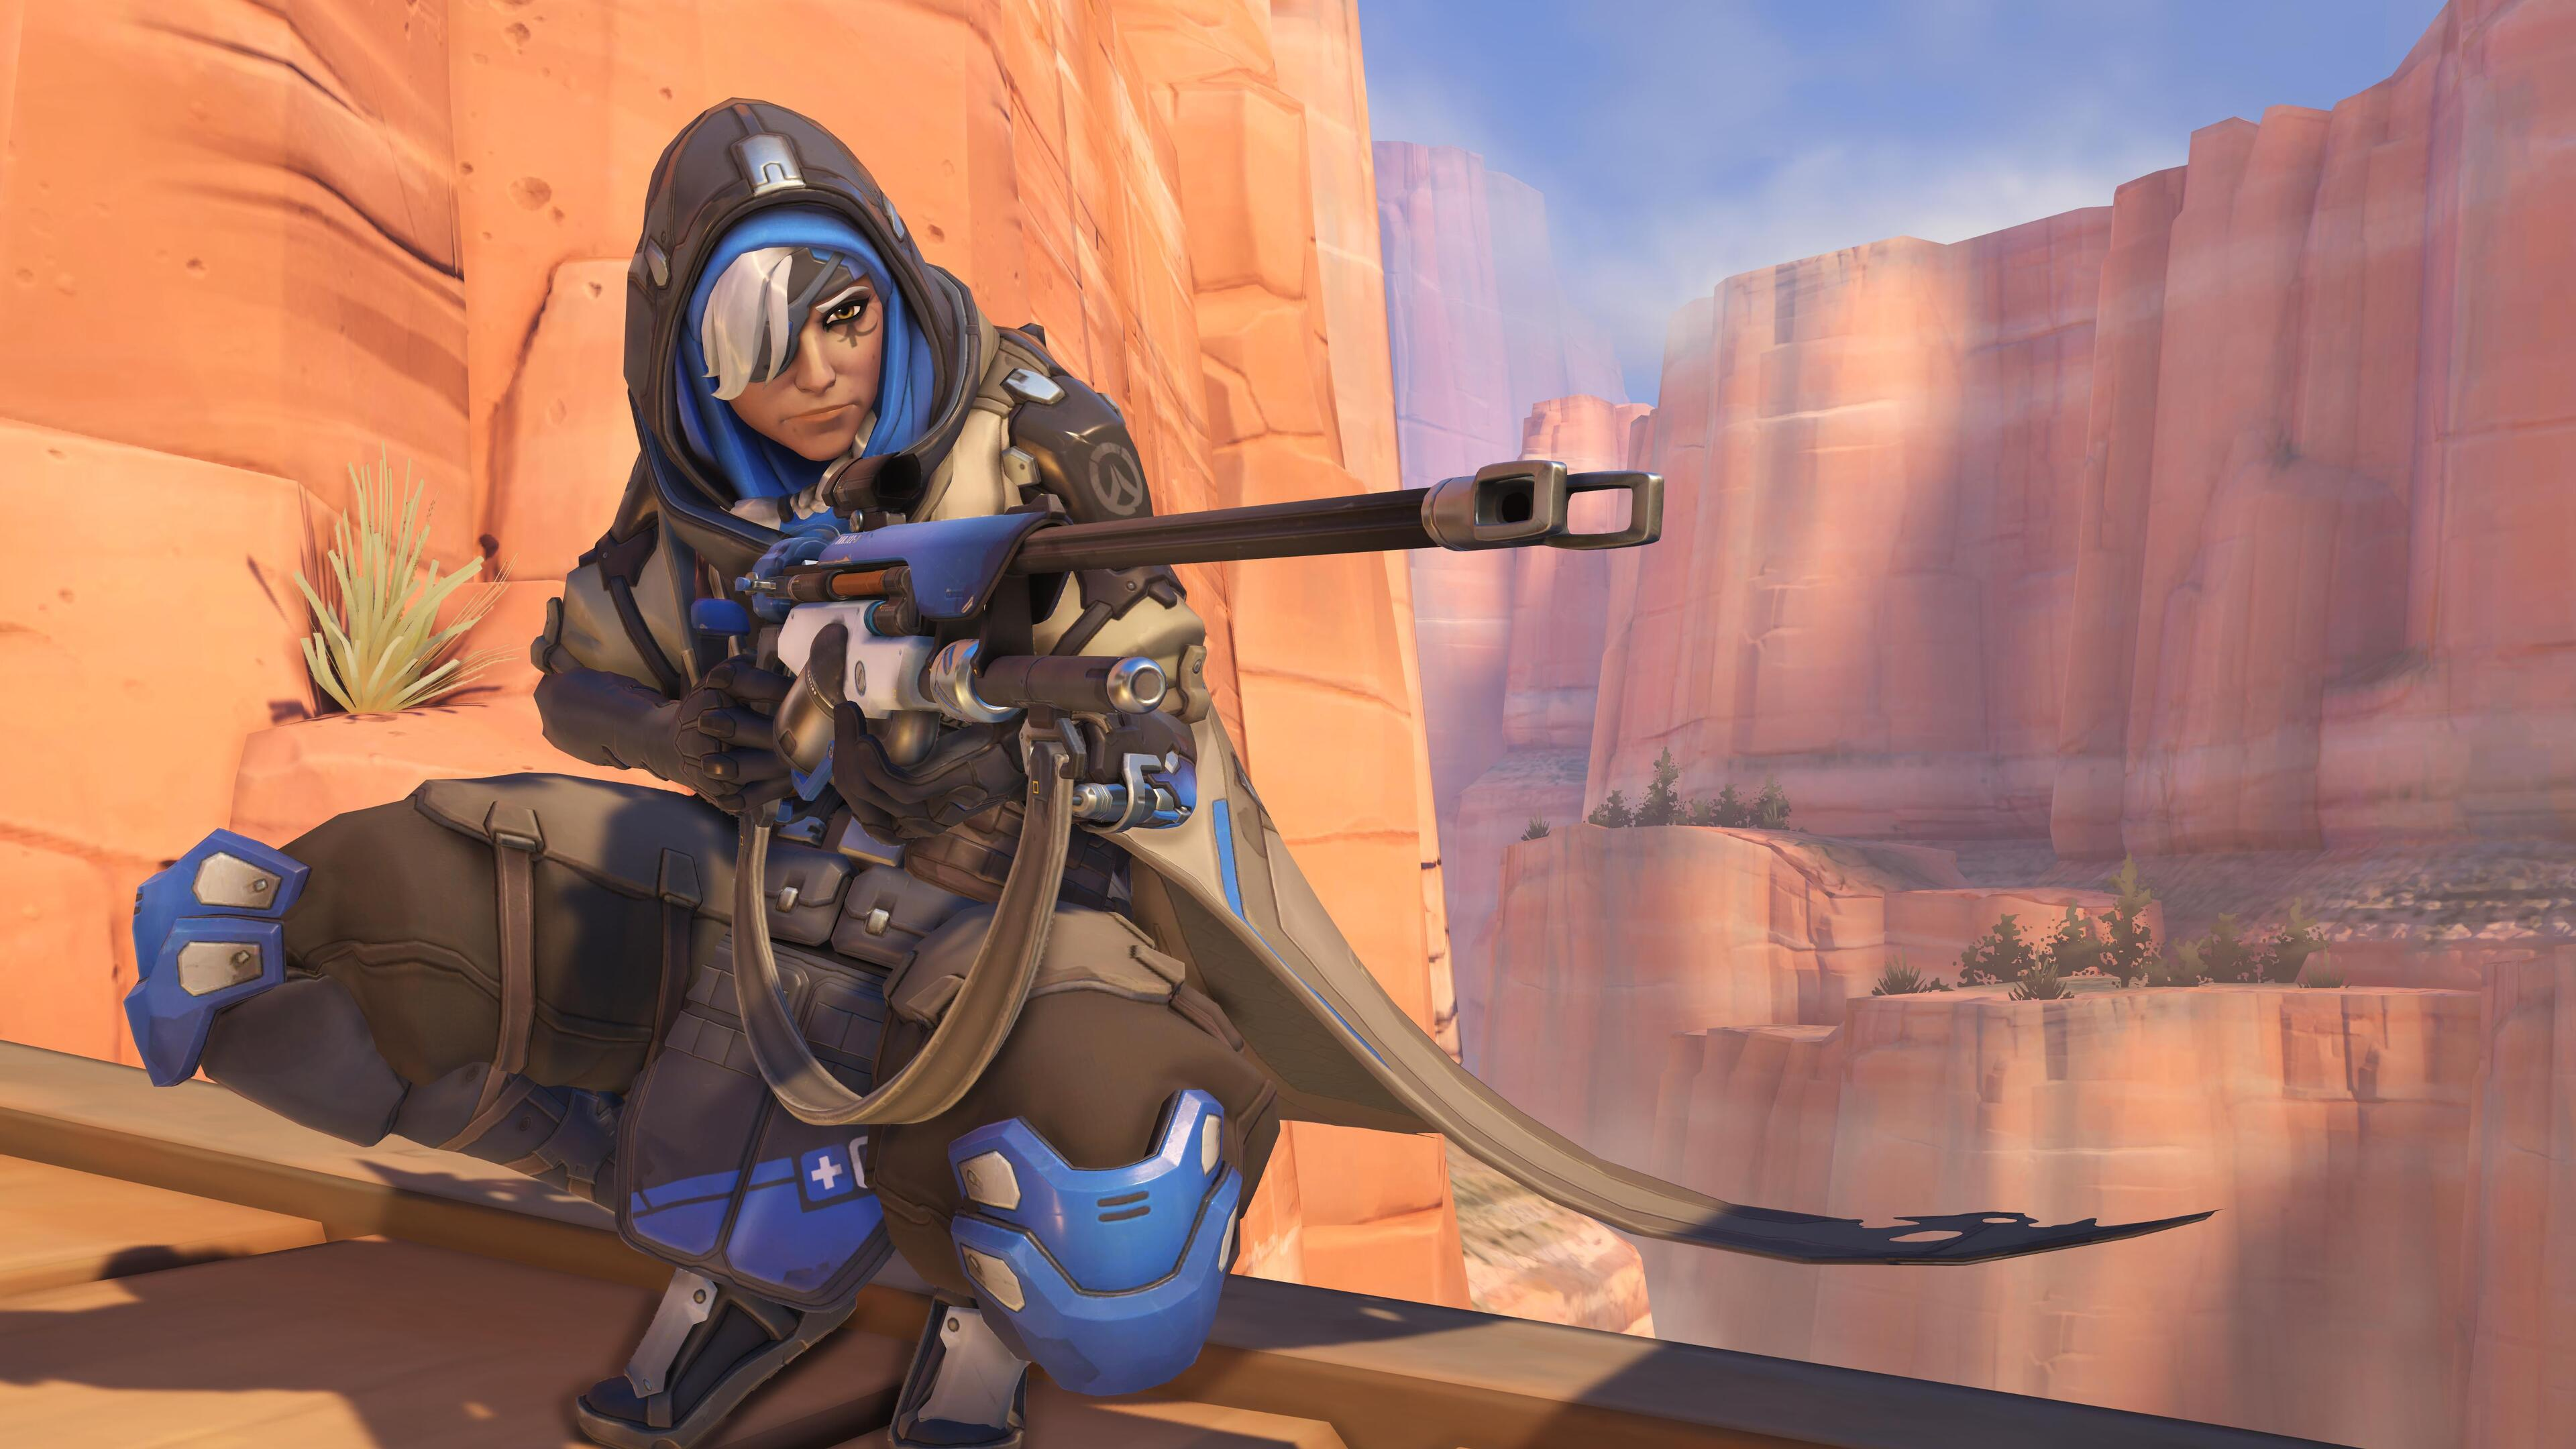 Top 13 Overwatch Wallpapers In Full Hd And 4k